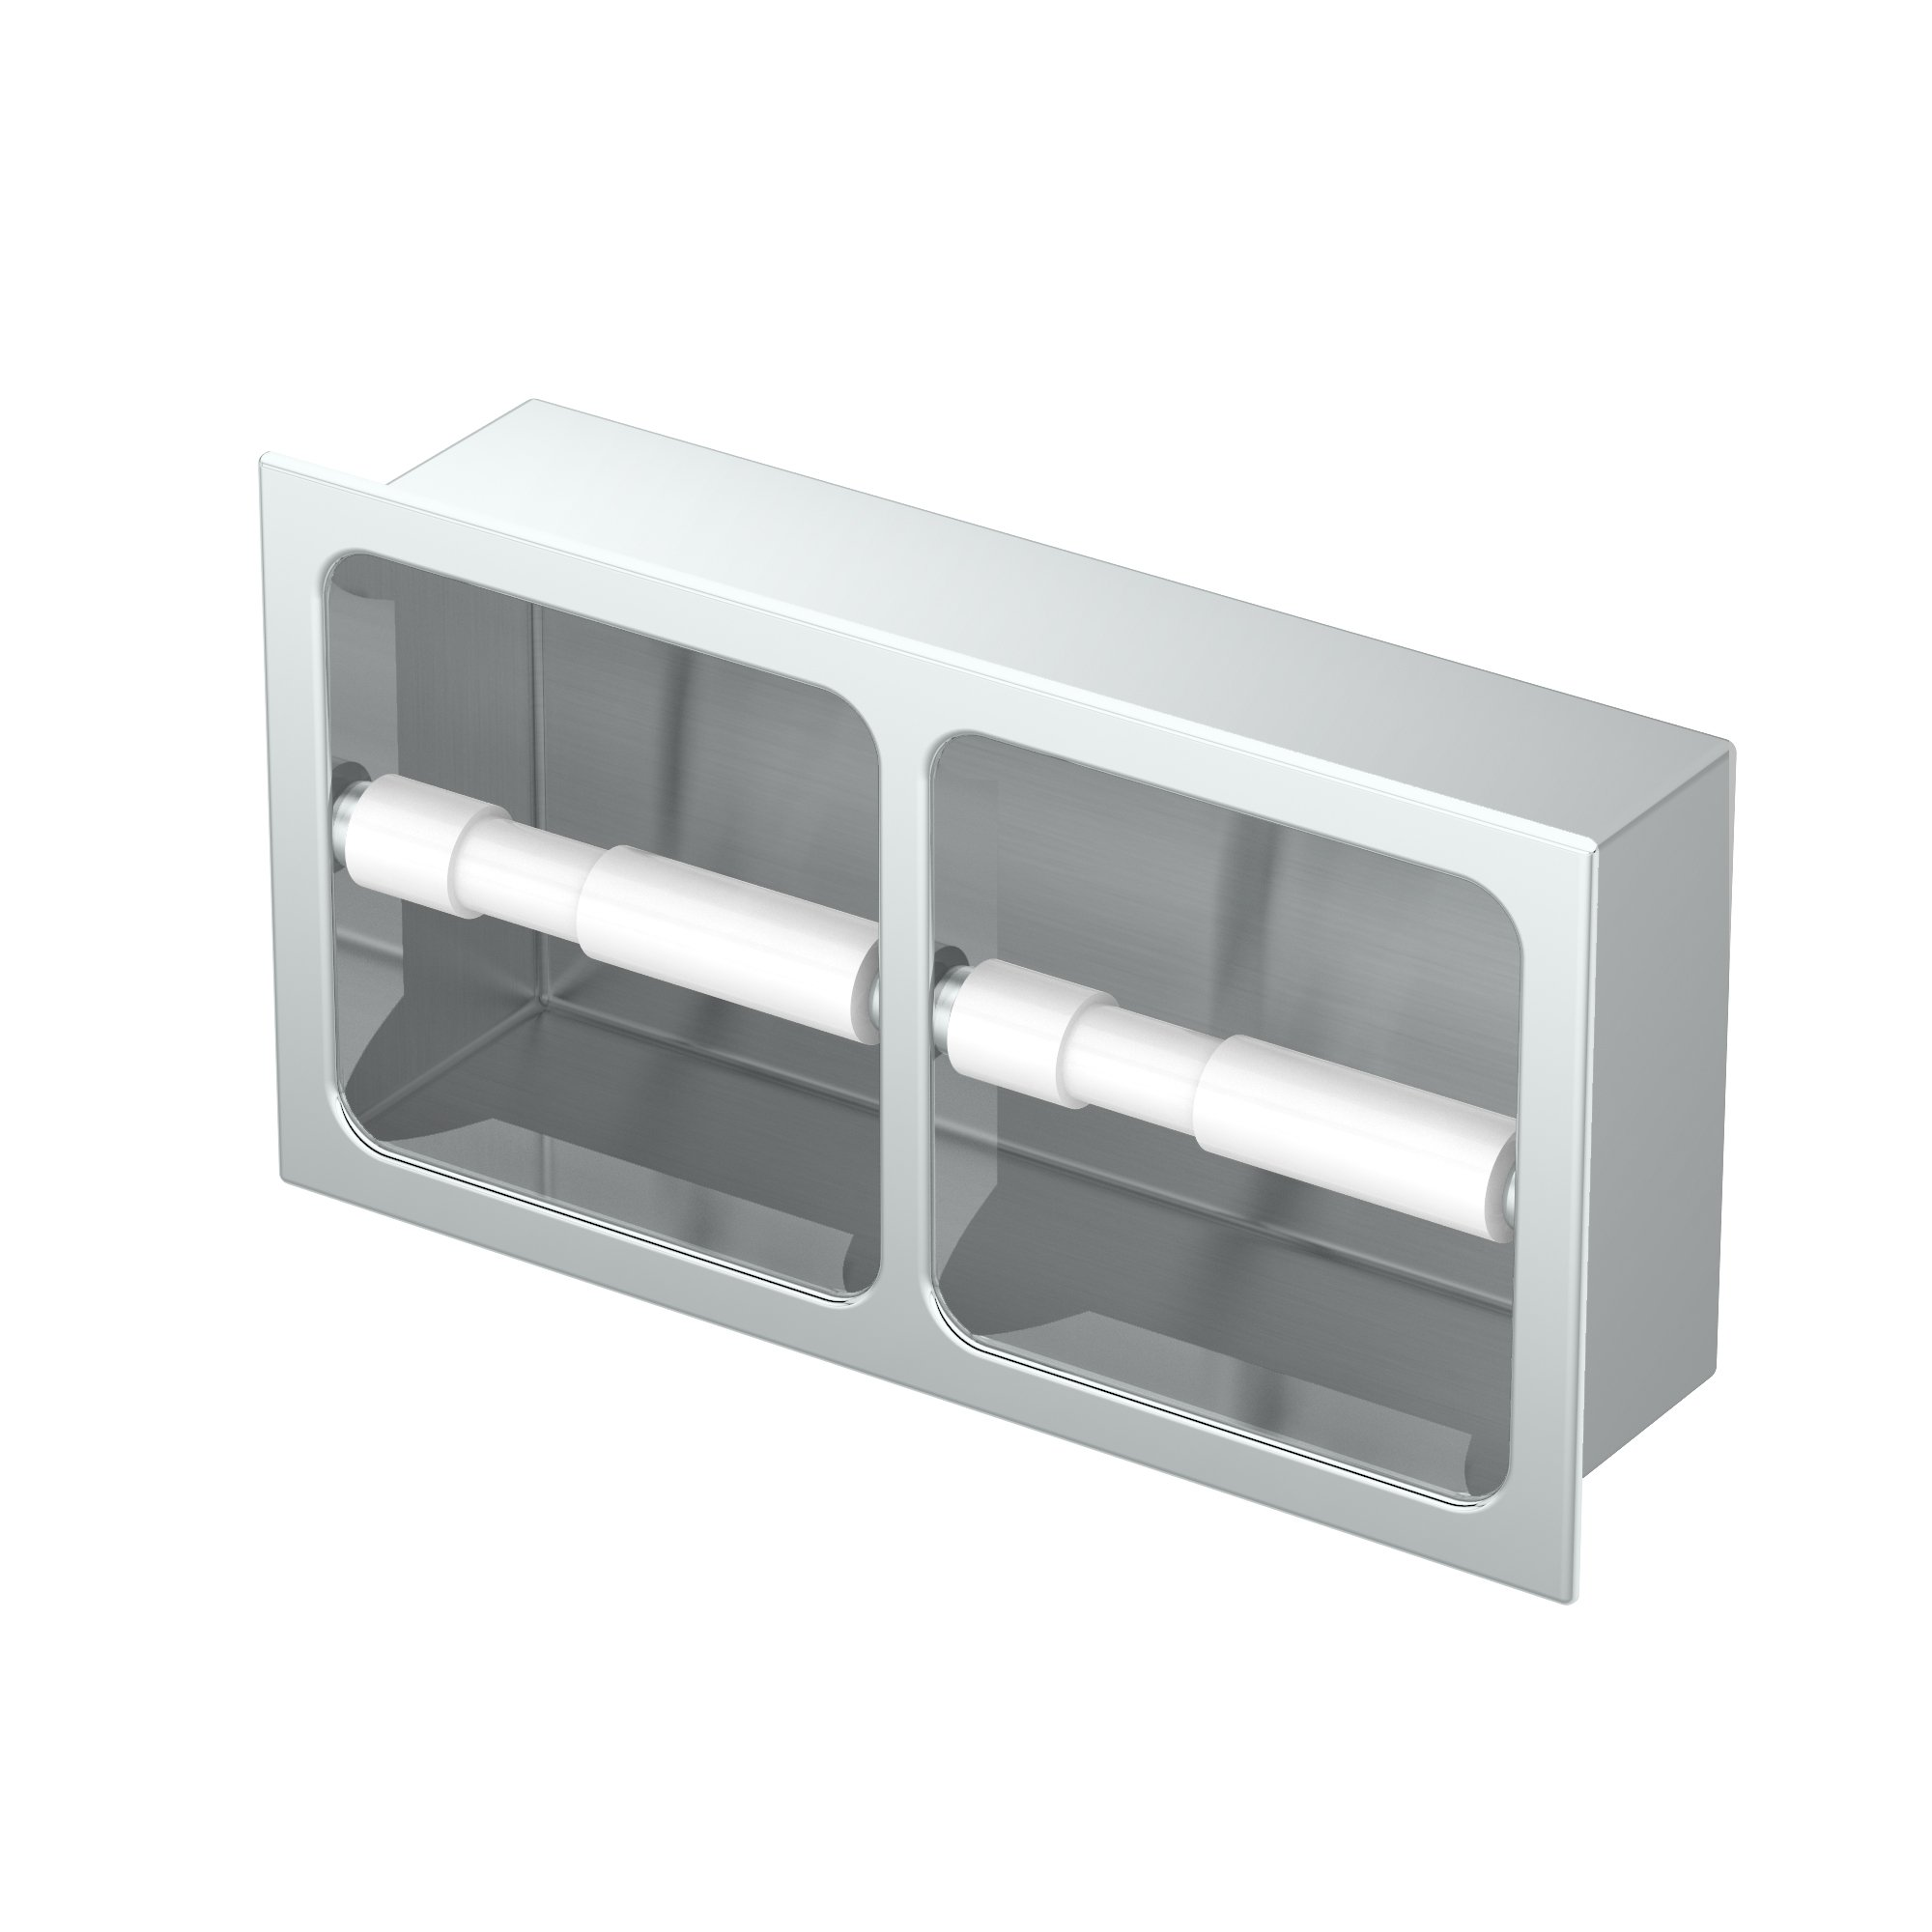 Gatco 782A Double Recessed Tissue Holder Chrome Doube Recessed Tissue Holder